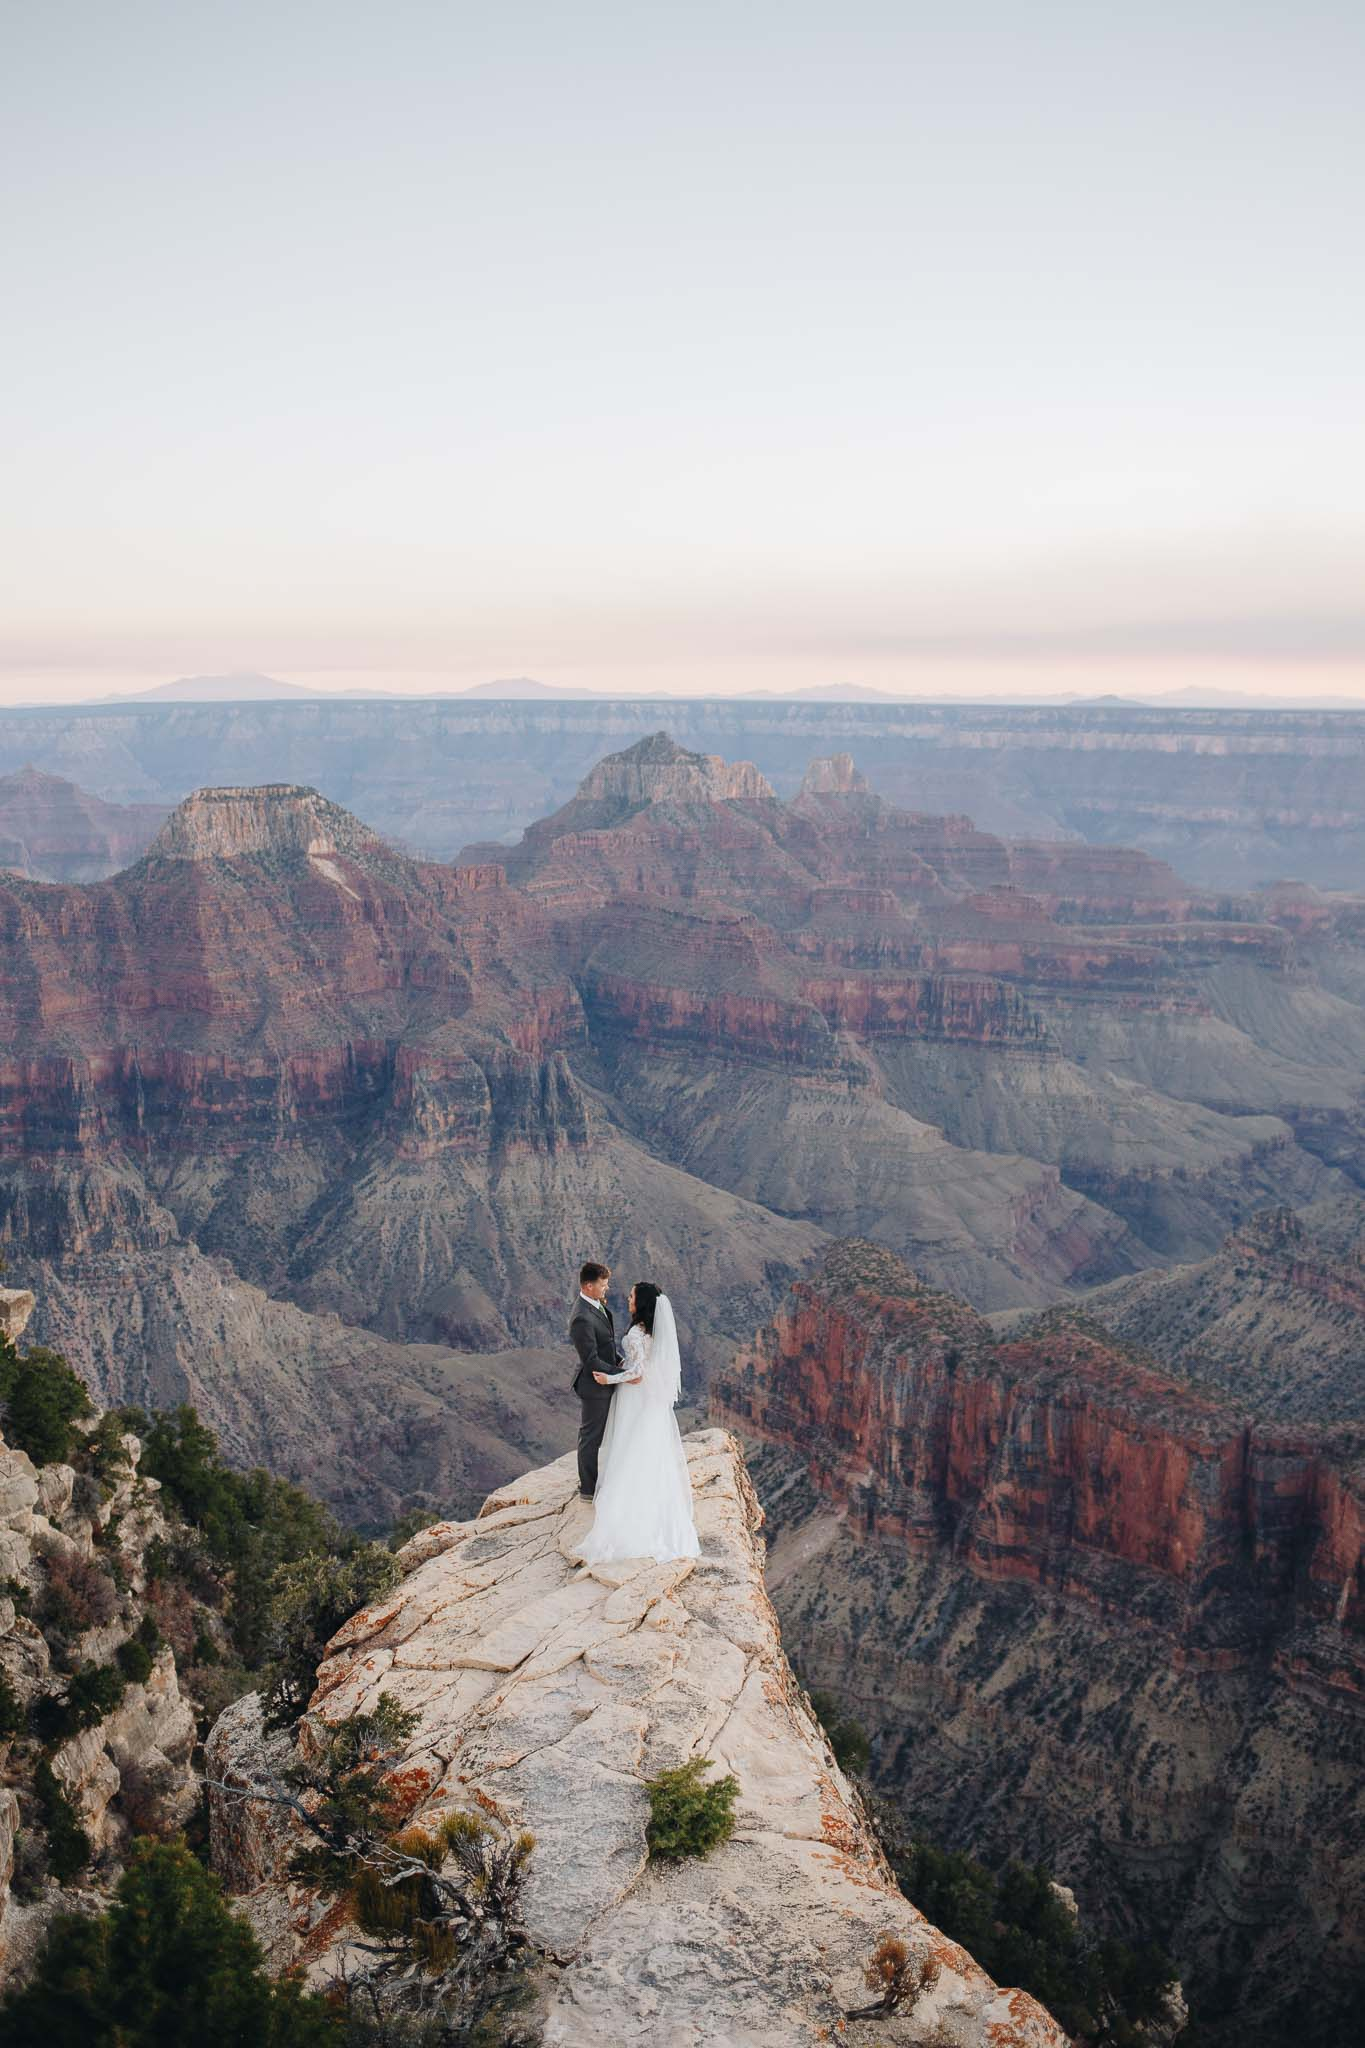 Bride and groom stand together overlook the North Rim of the Grand Canyon for their adventure wedding portraits